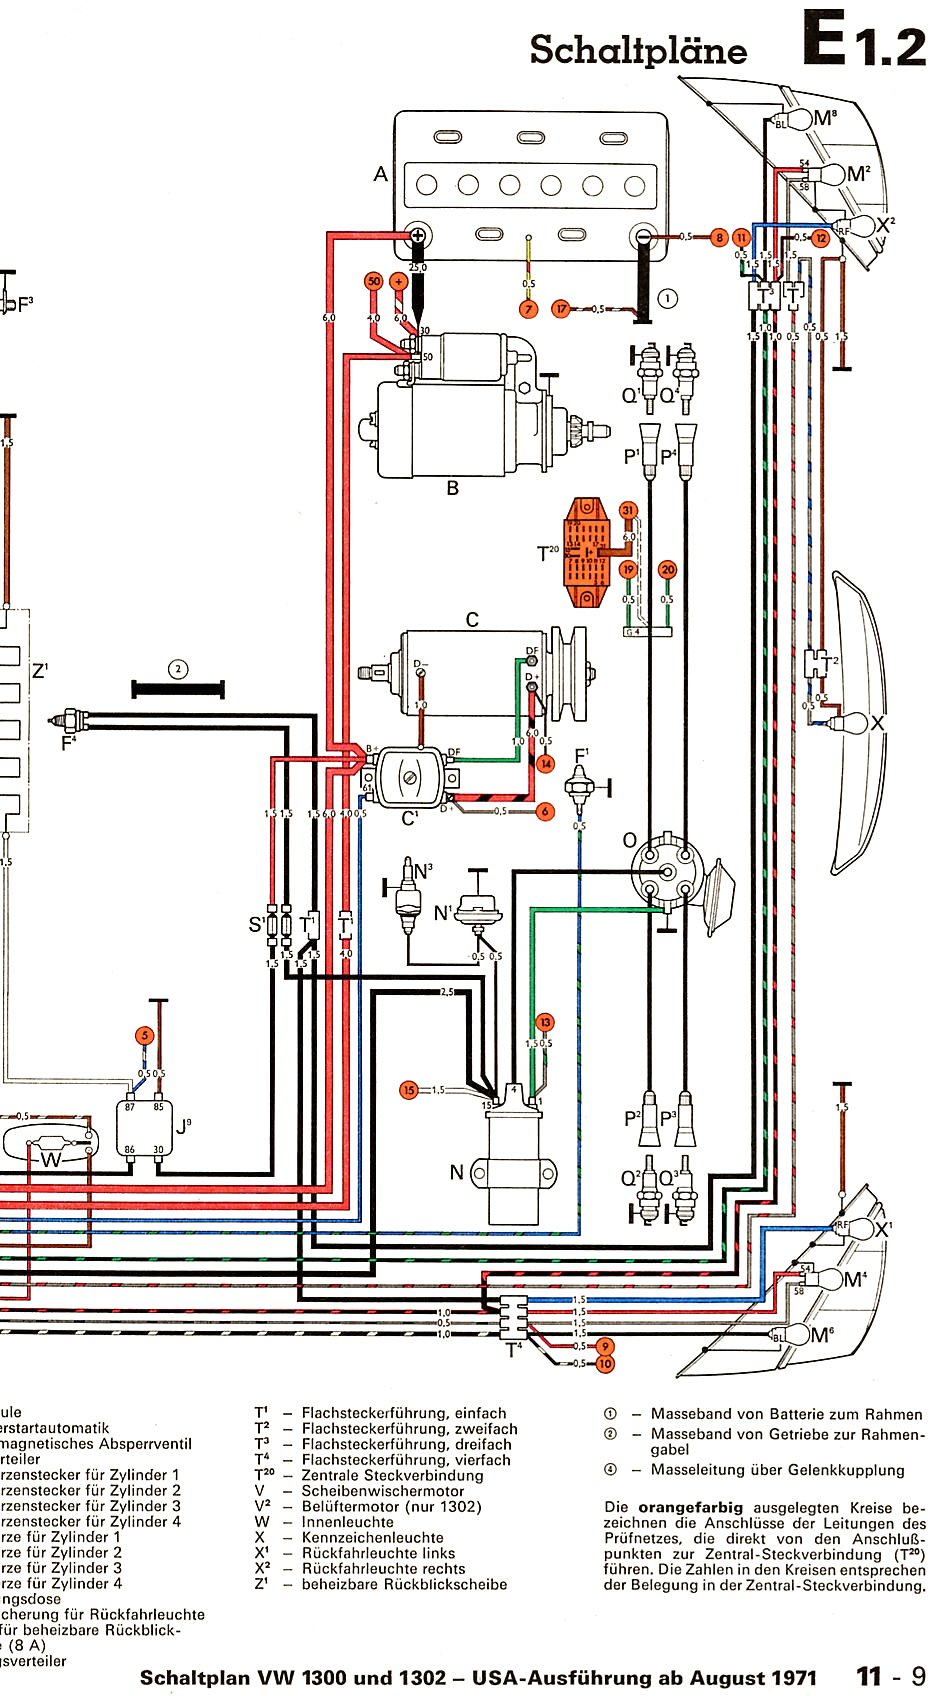 schematics 73 vw wiring diagrams 73 image wiring diagram moreover coil wiring hook up s itinerant air cooled furthermore vw beetle wiring diagram uk vw wiring